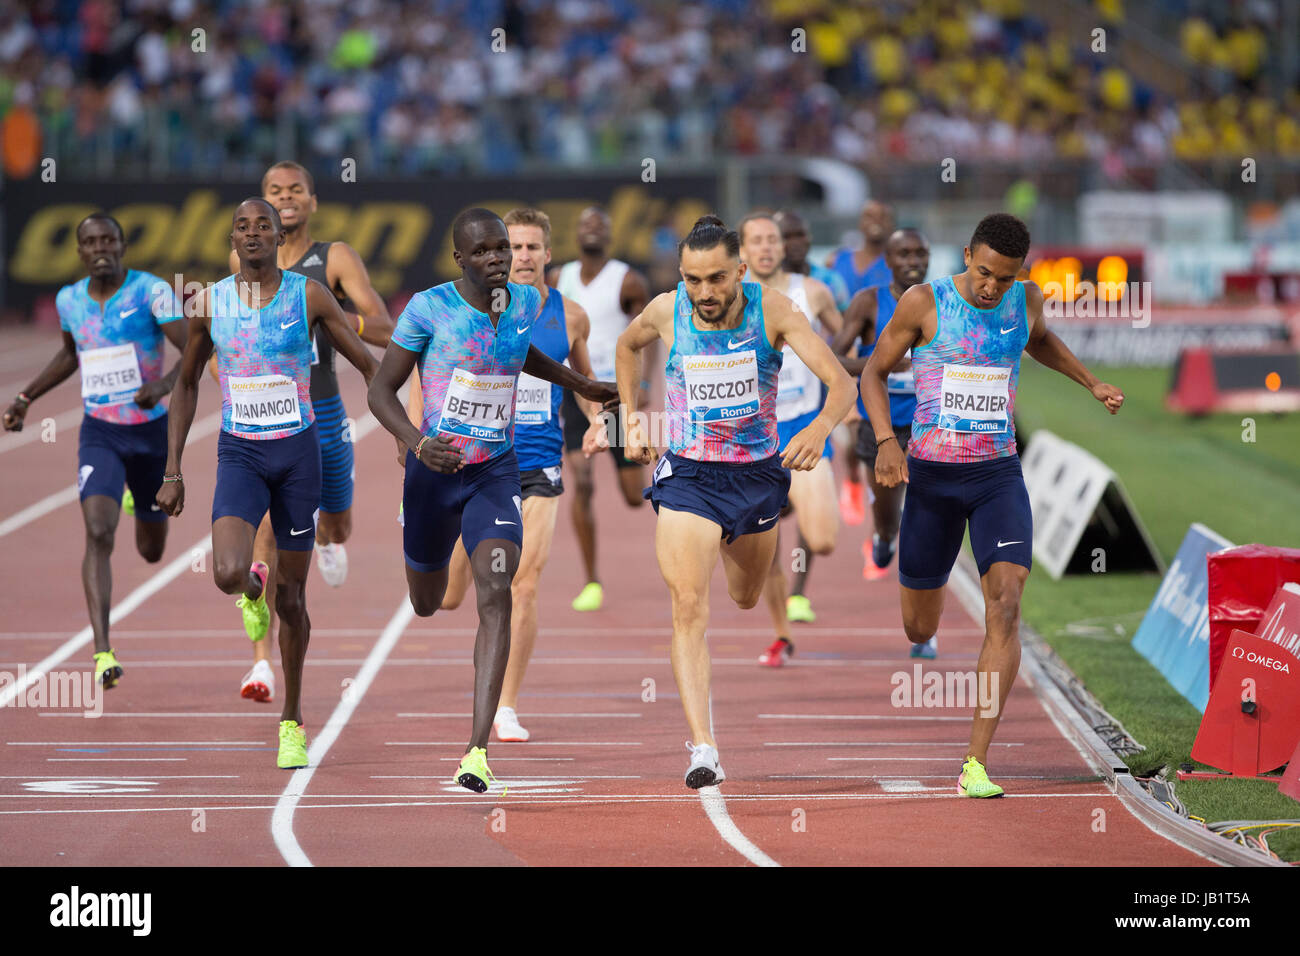 Golden Gala 2017 at Olympic Stadium in Rome in June, 8, 2017 - Stock Image